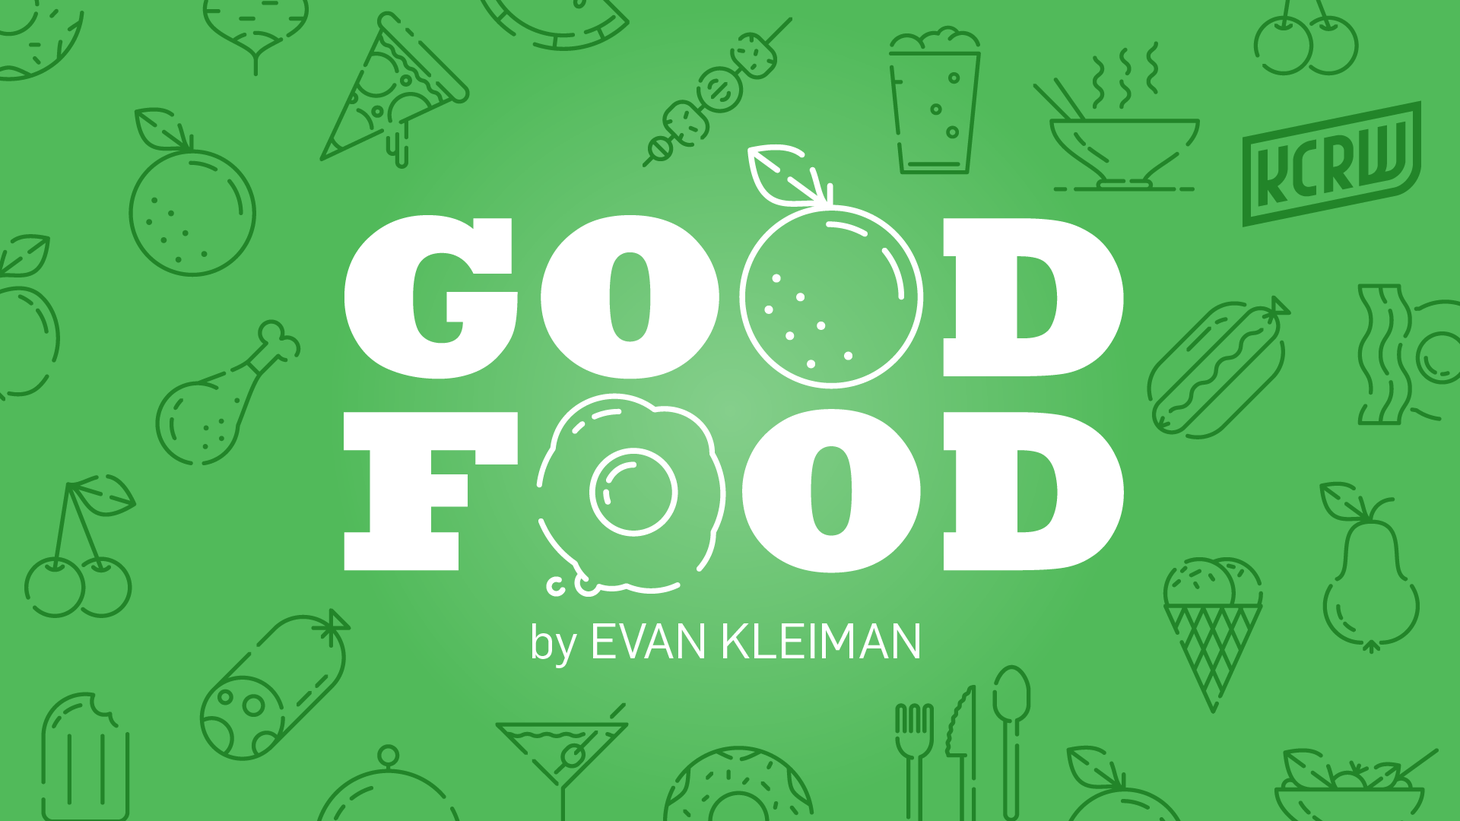 This week on Good Food: we'll talk to a man who grows tomatoes from seeds that his enslaved great-grandmother saved over a hundred years ago; find out about the origins of the modern supermarket; it's time for our kids to go back to school - we'll see if they'll be served Coke or Pepsi; and we'll discuss Asian food grilling techniques.